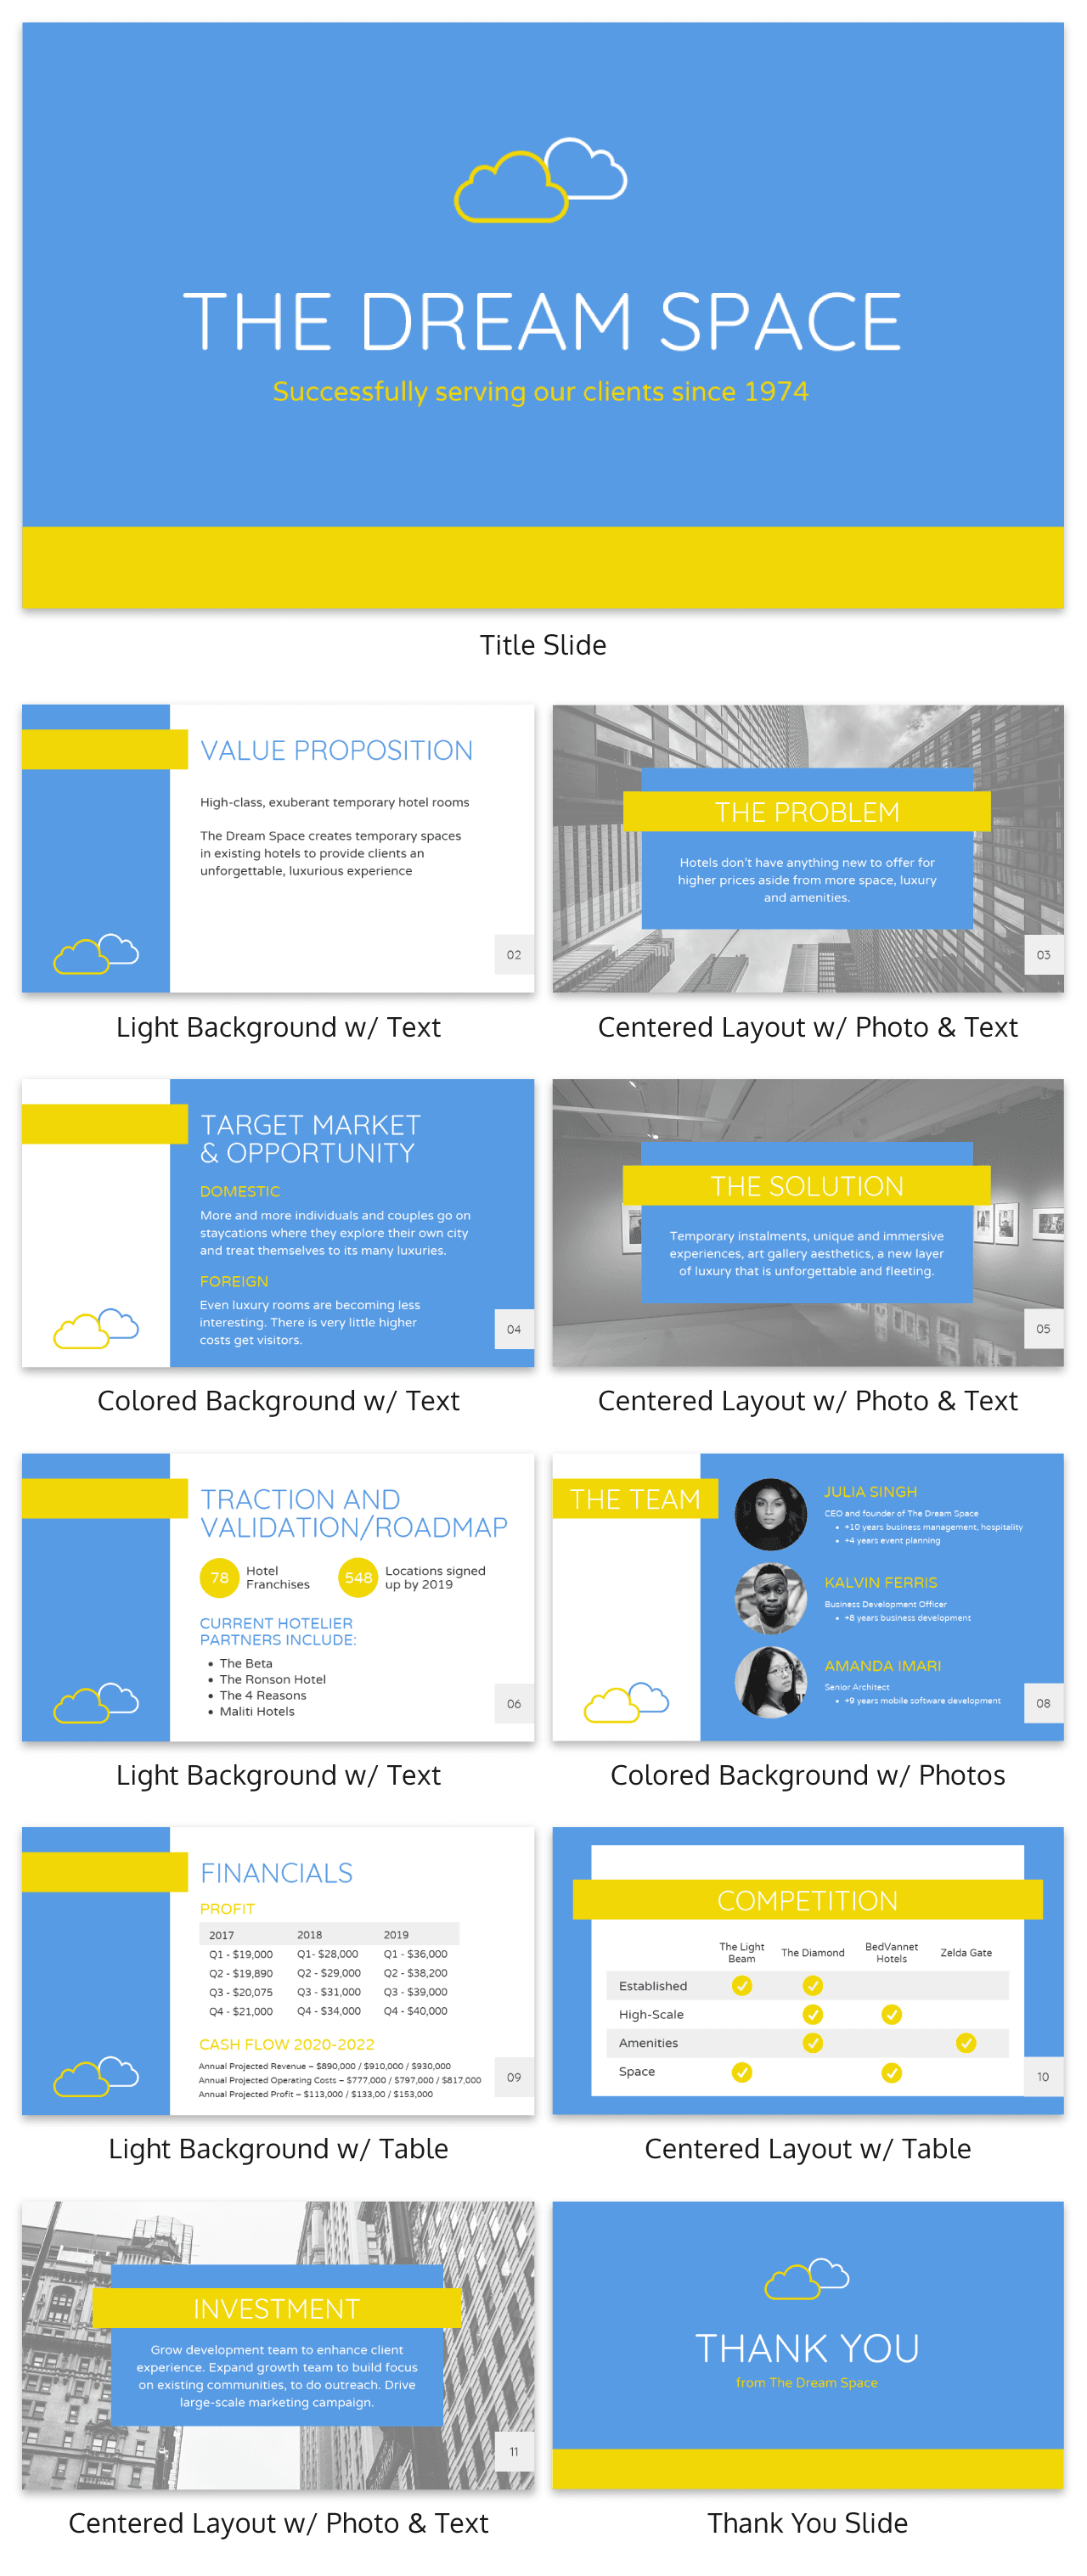 12 business pitch deck templates and design best practices to business pitch deck templates flashek